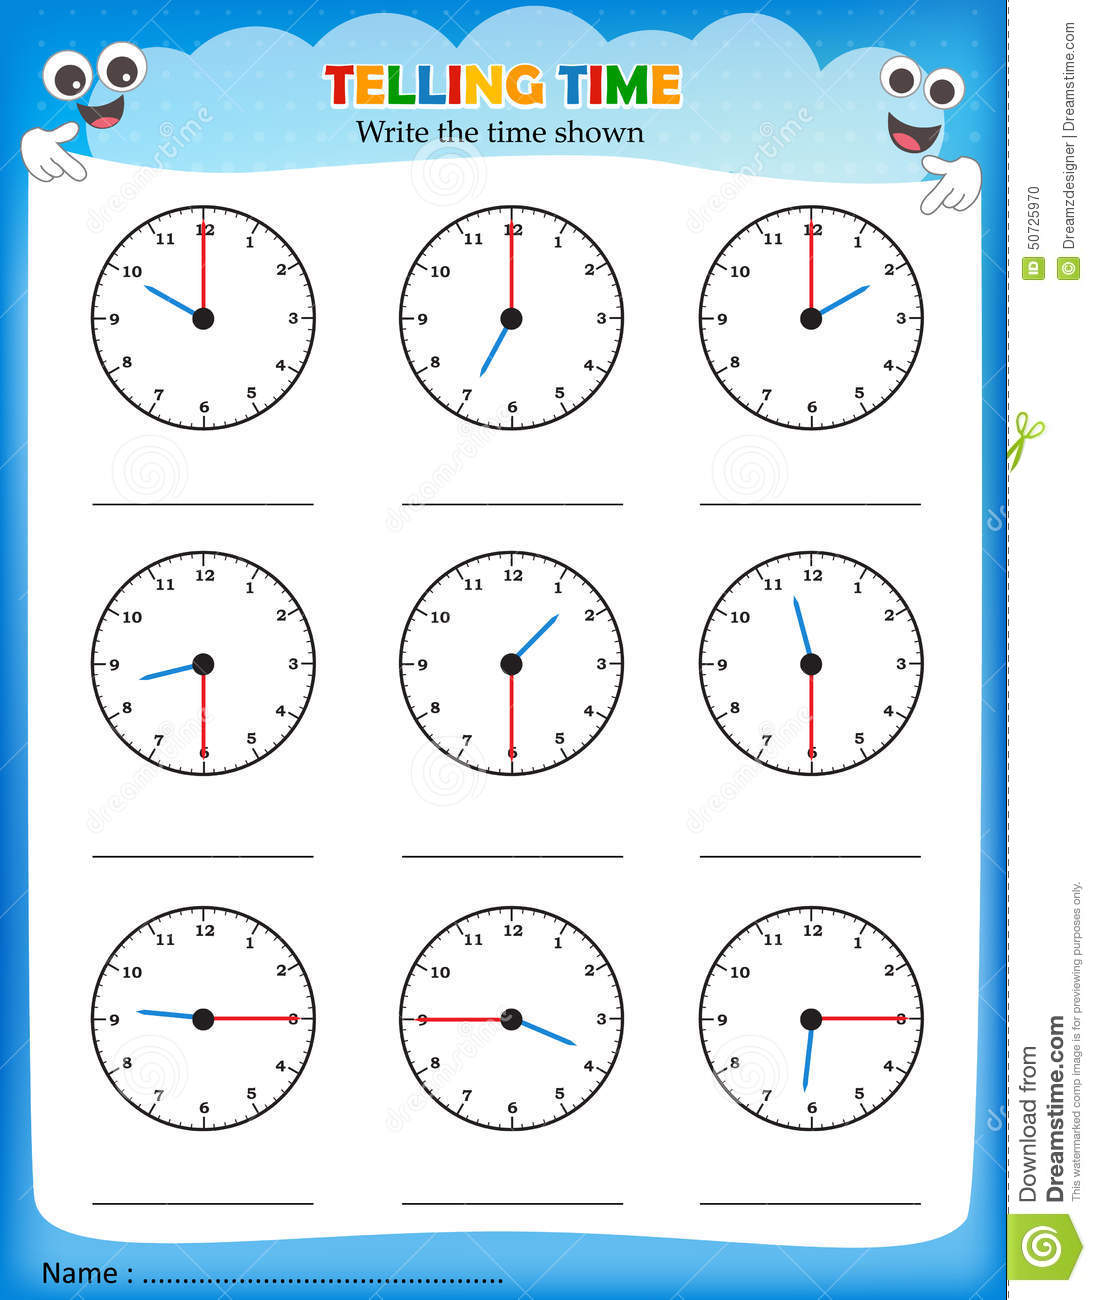 telling time worksheet write shown clock empty space 50725970